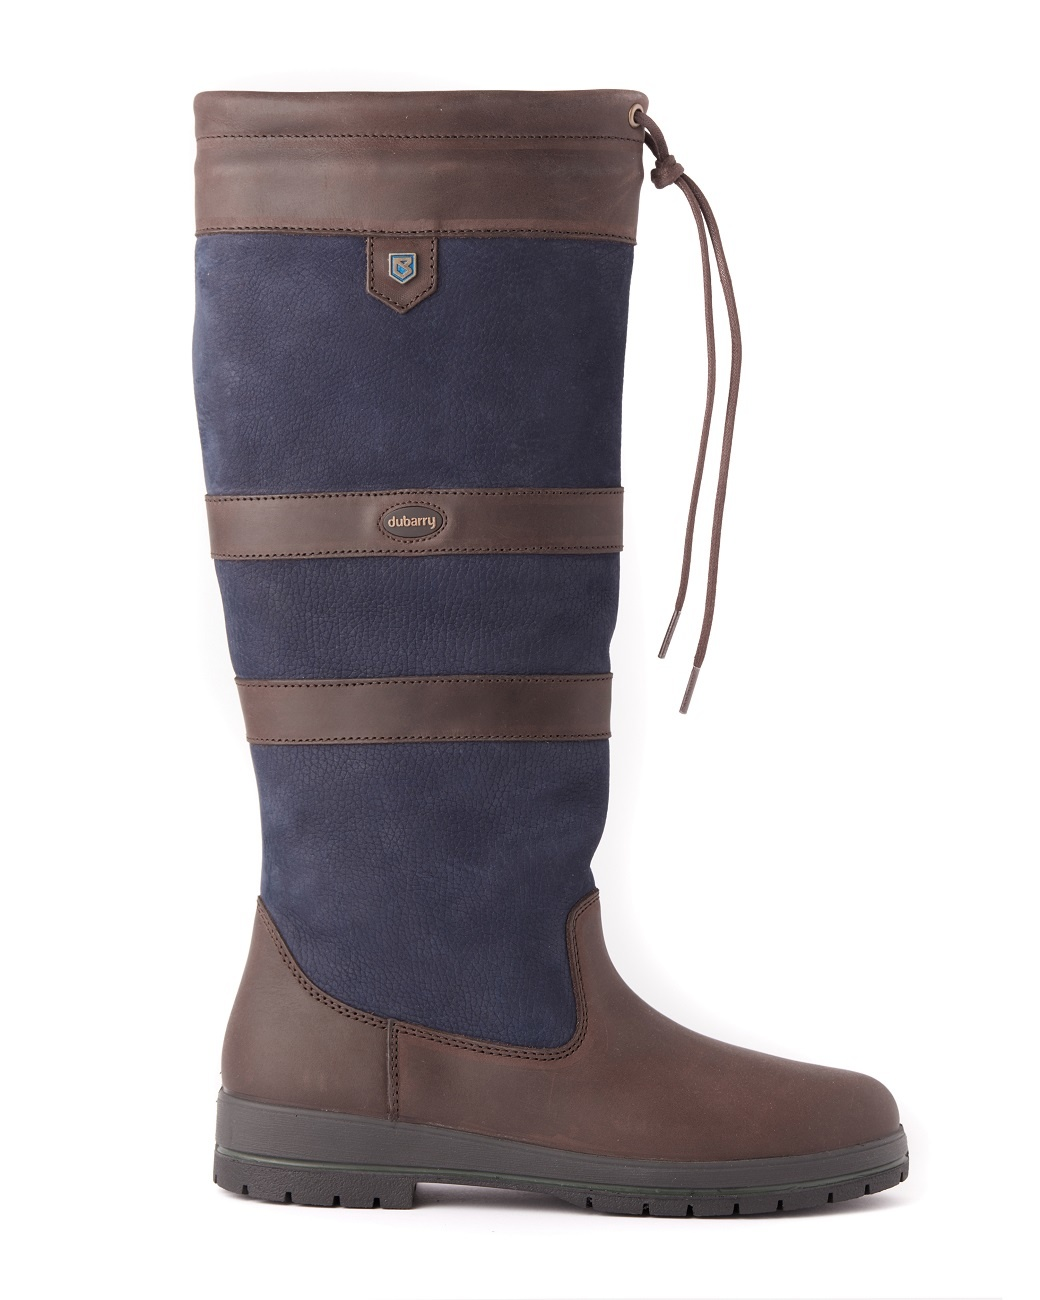 Dubarry Galway Extrafit™- Navy/Brown-6